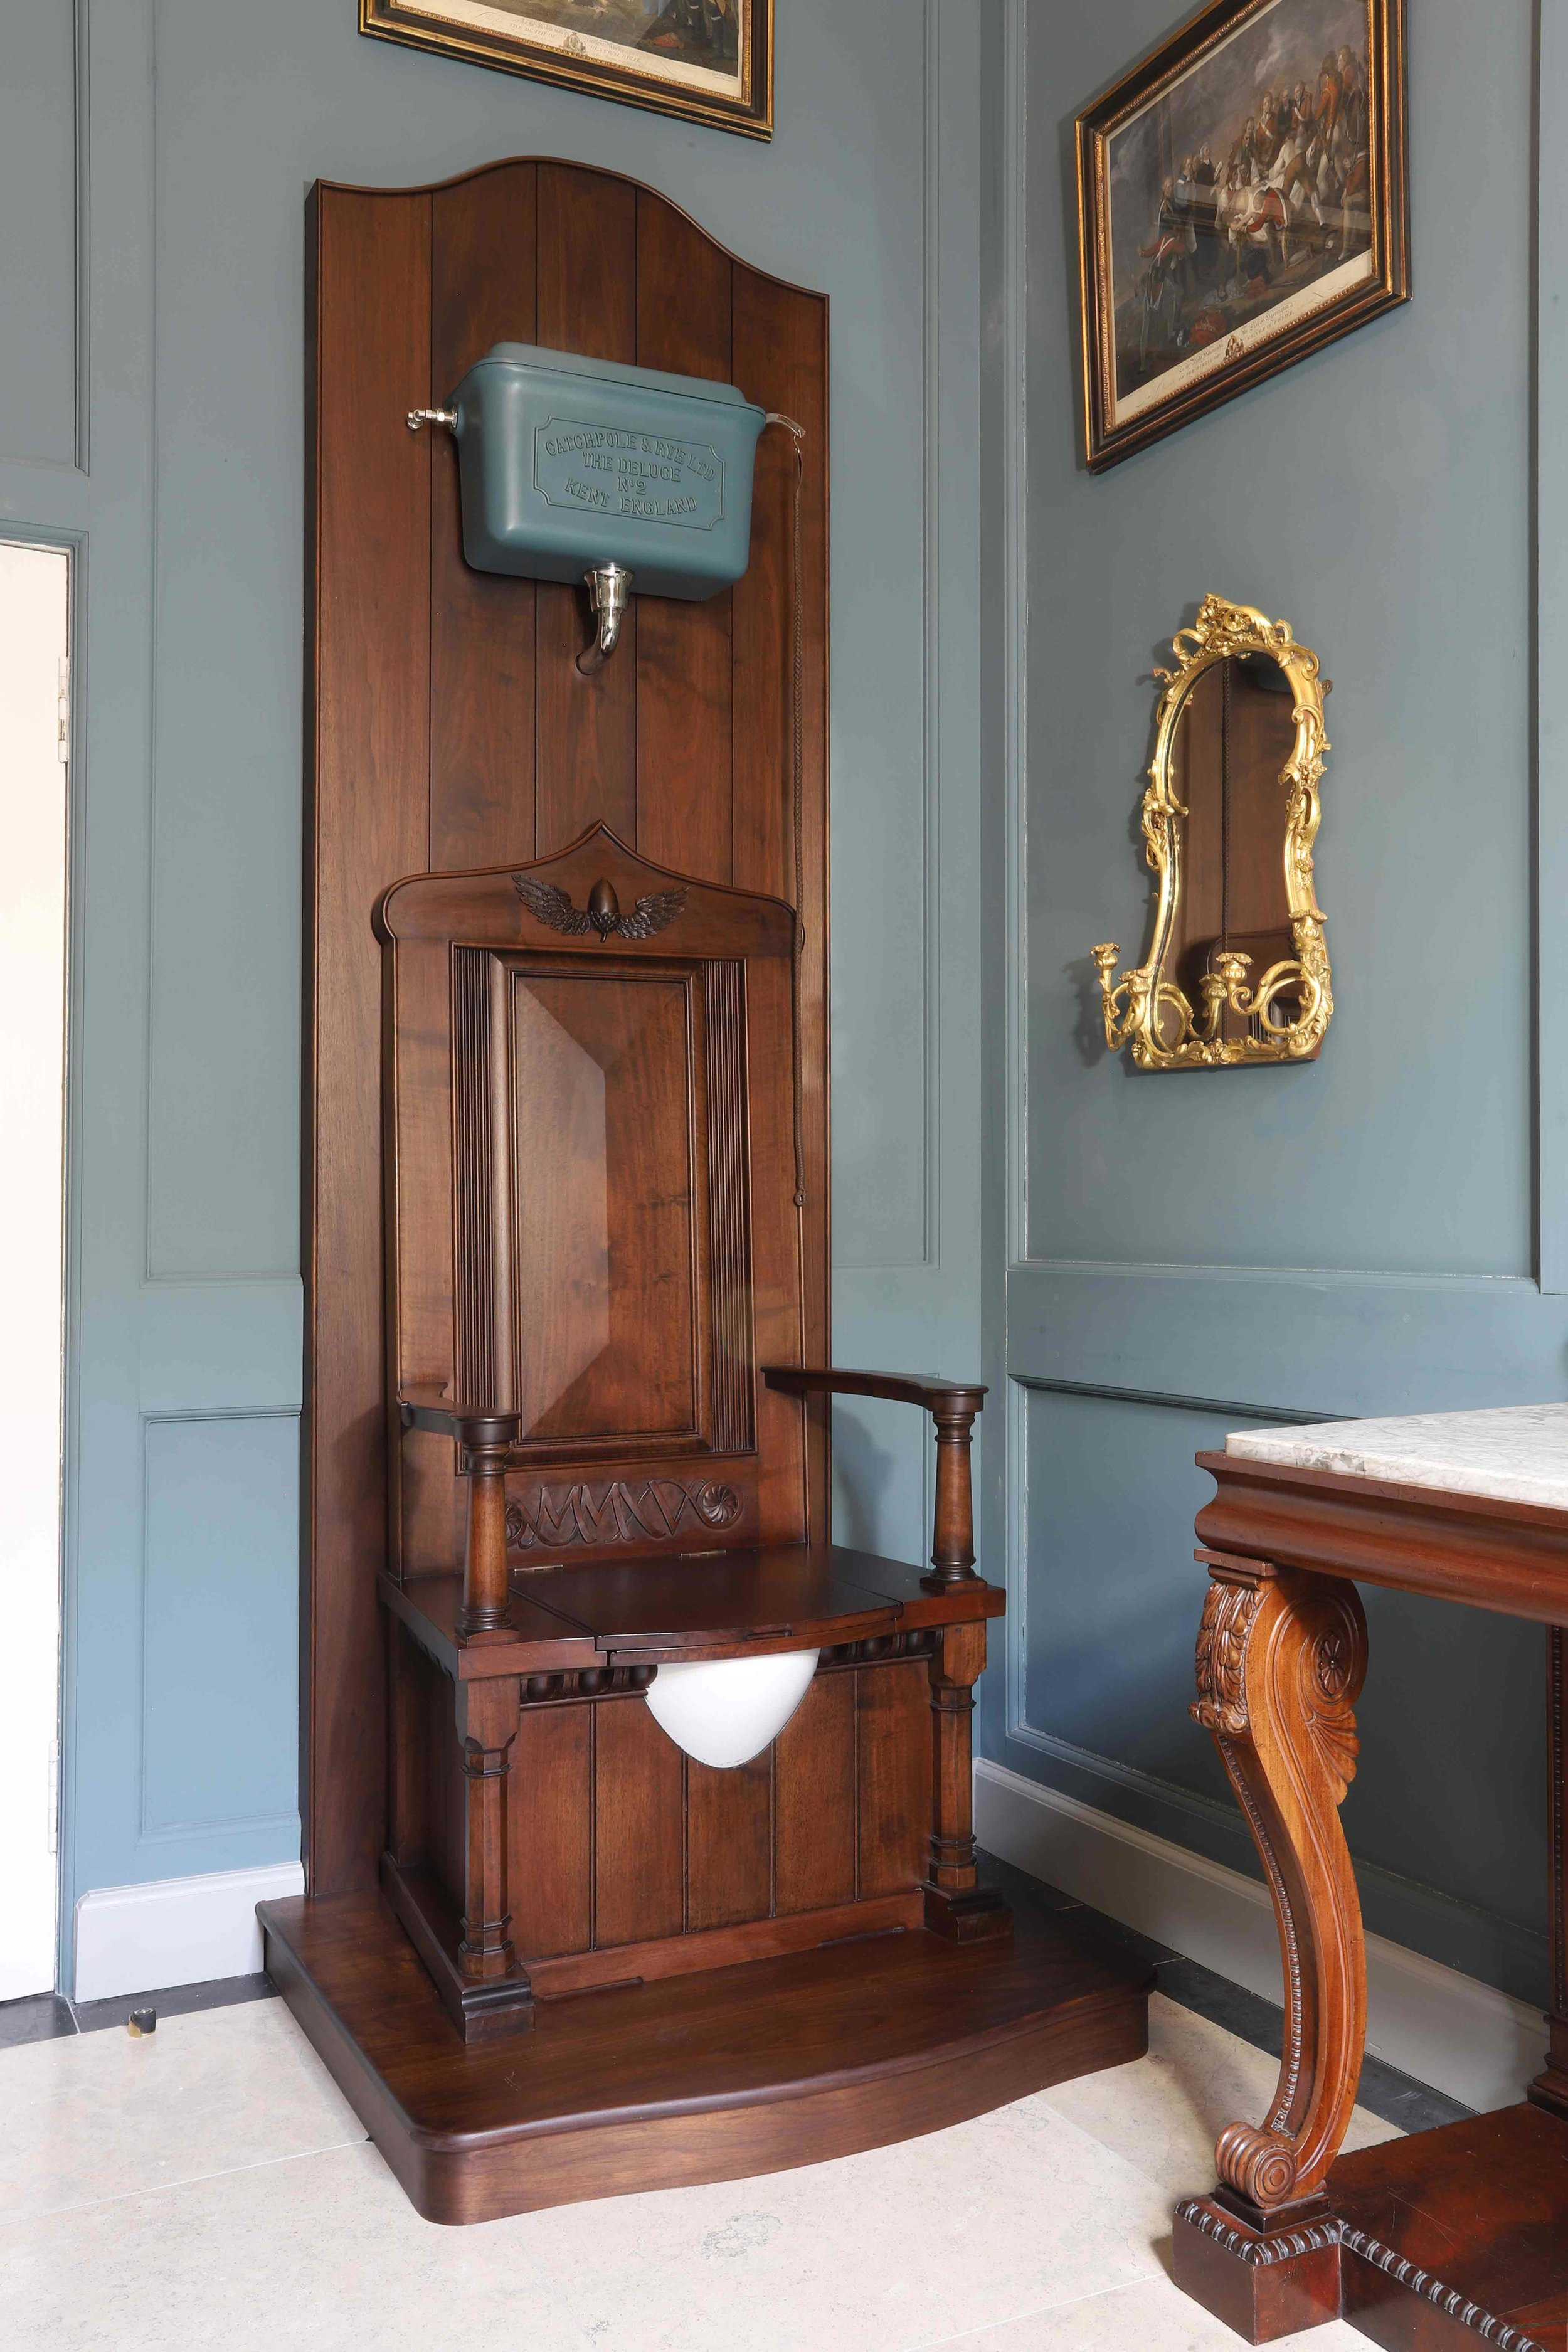 Throne toilet on Dais platform with carved detailing, Marchmont House.